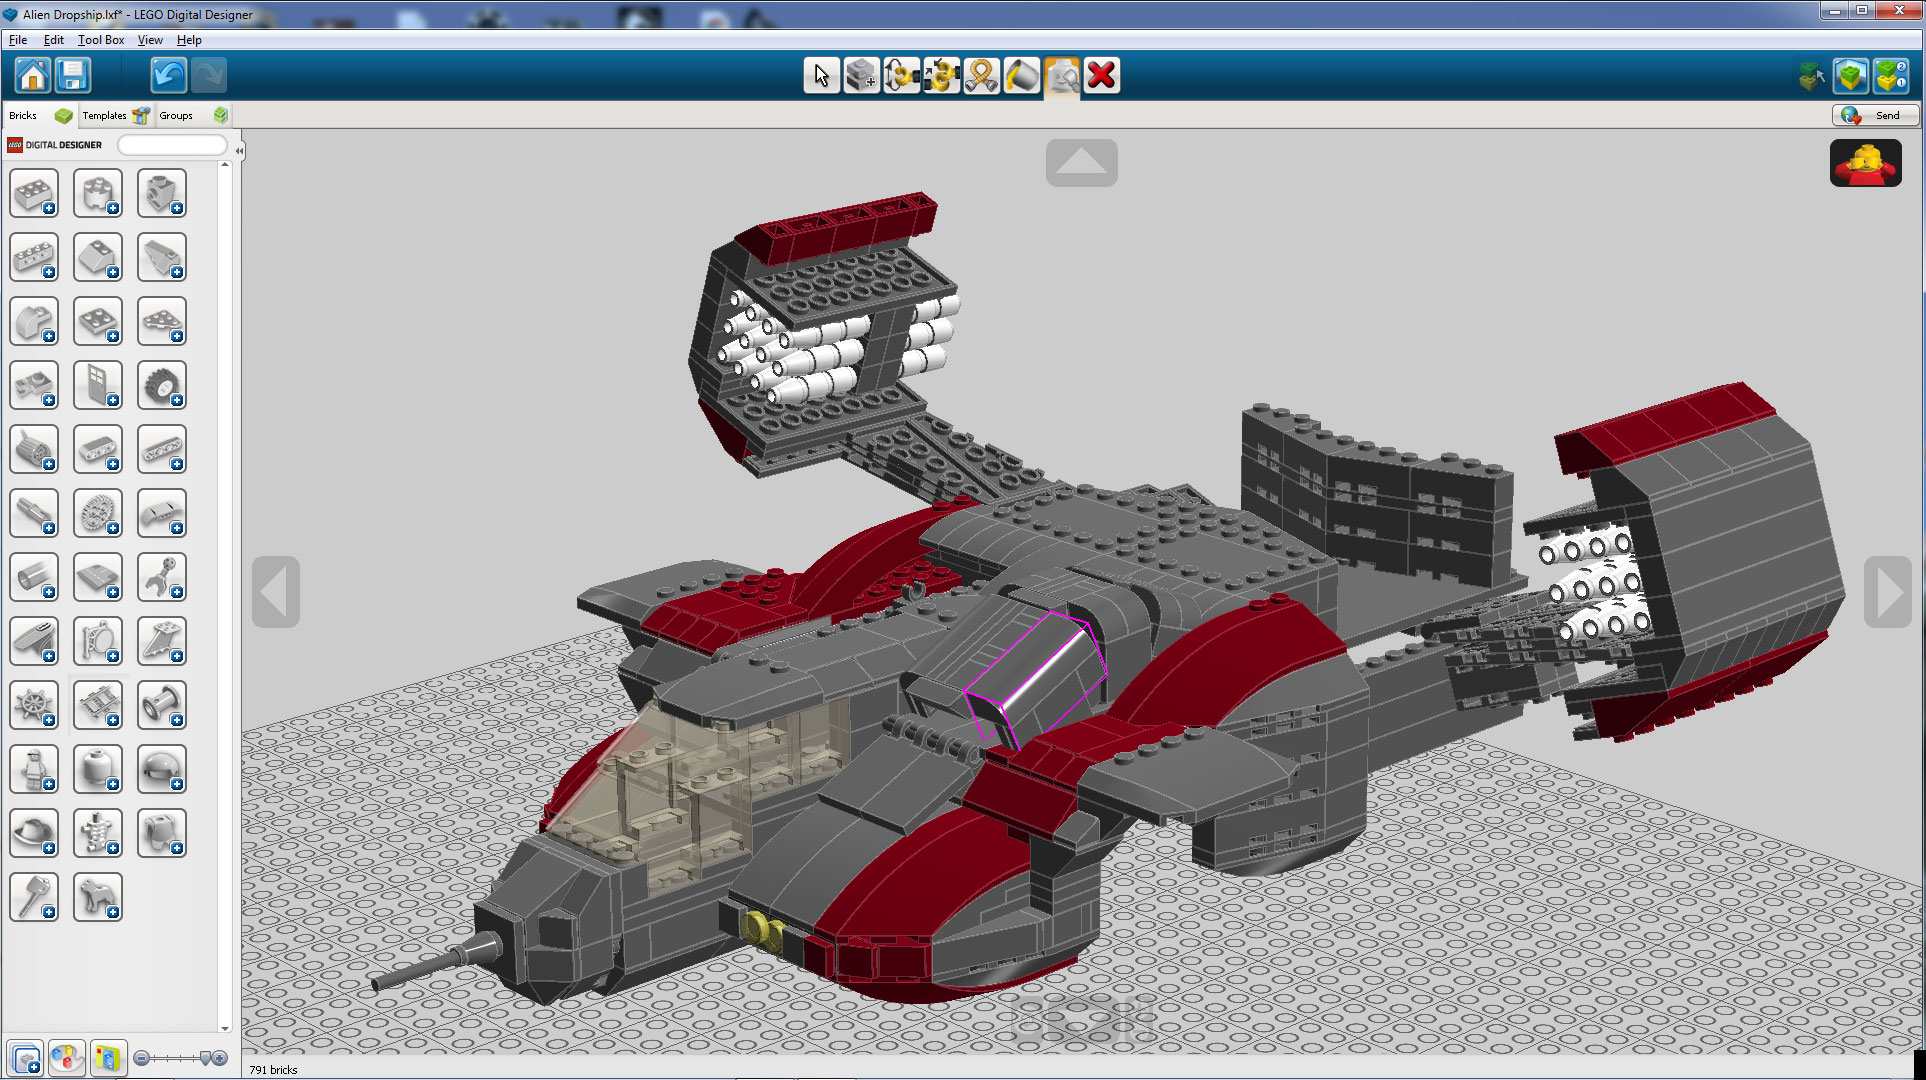 Screen shot of Lego Dropship built in Lego Digital Designer - front half done